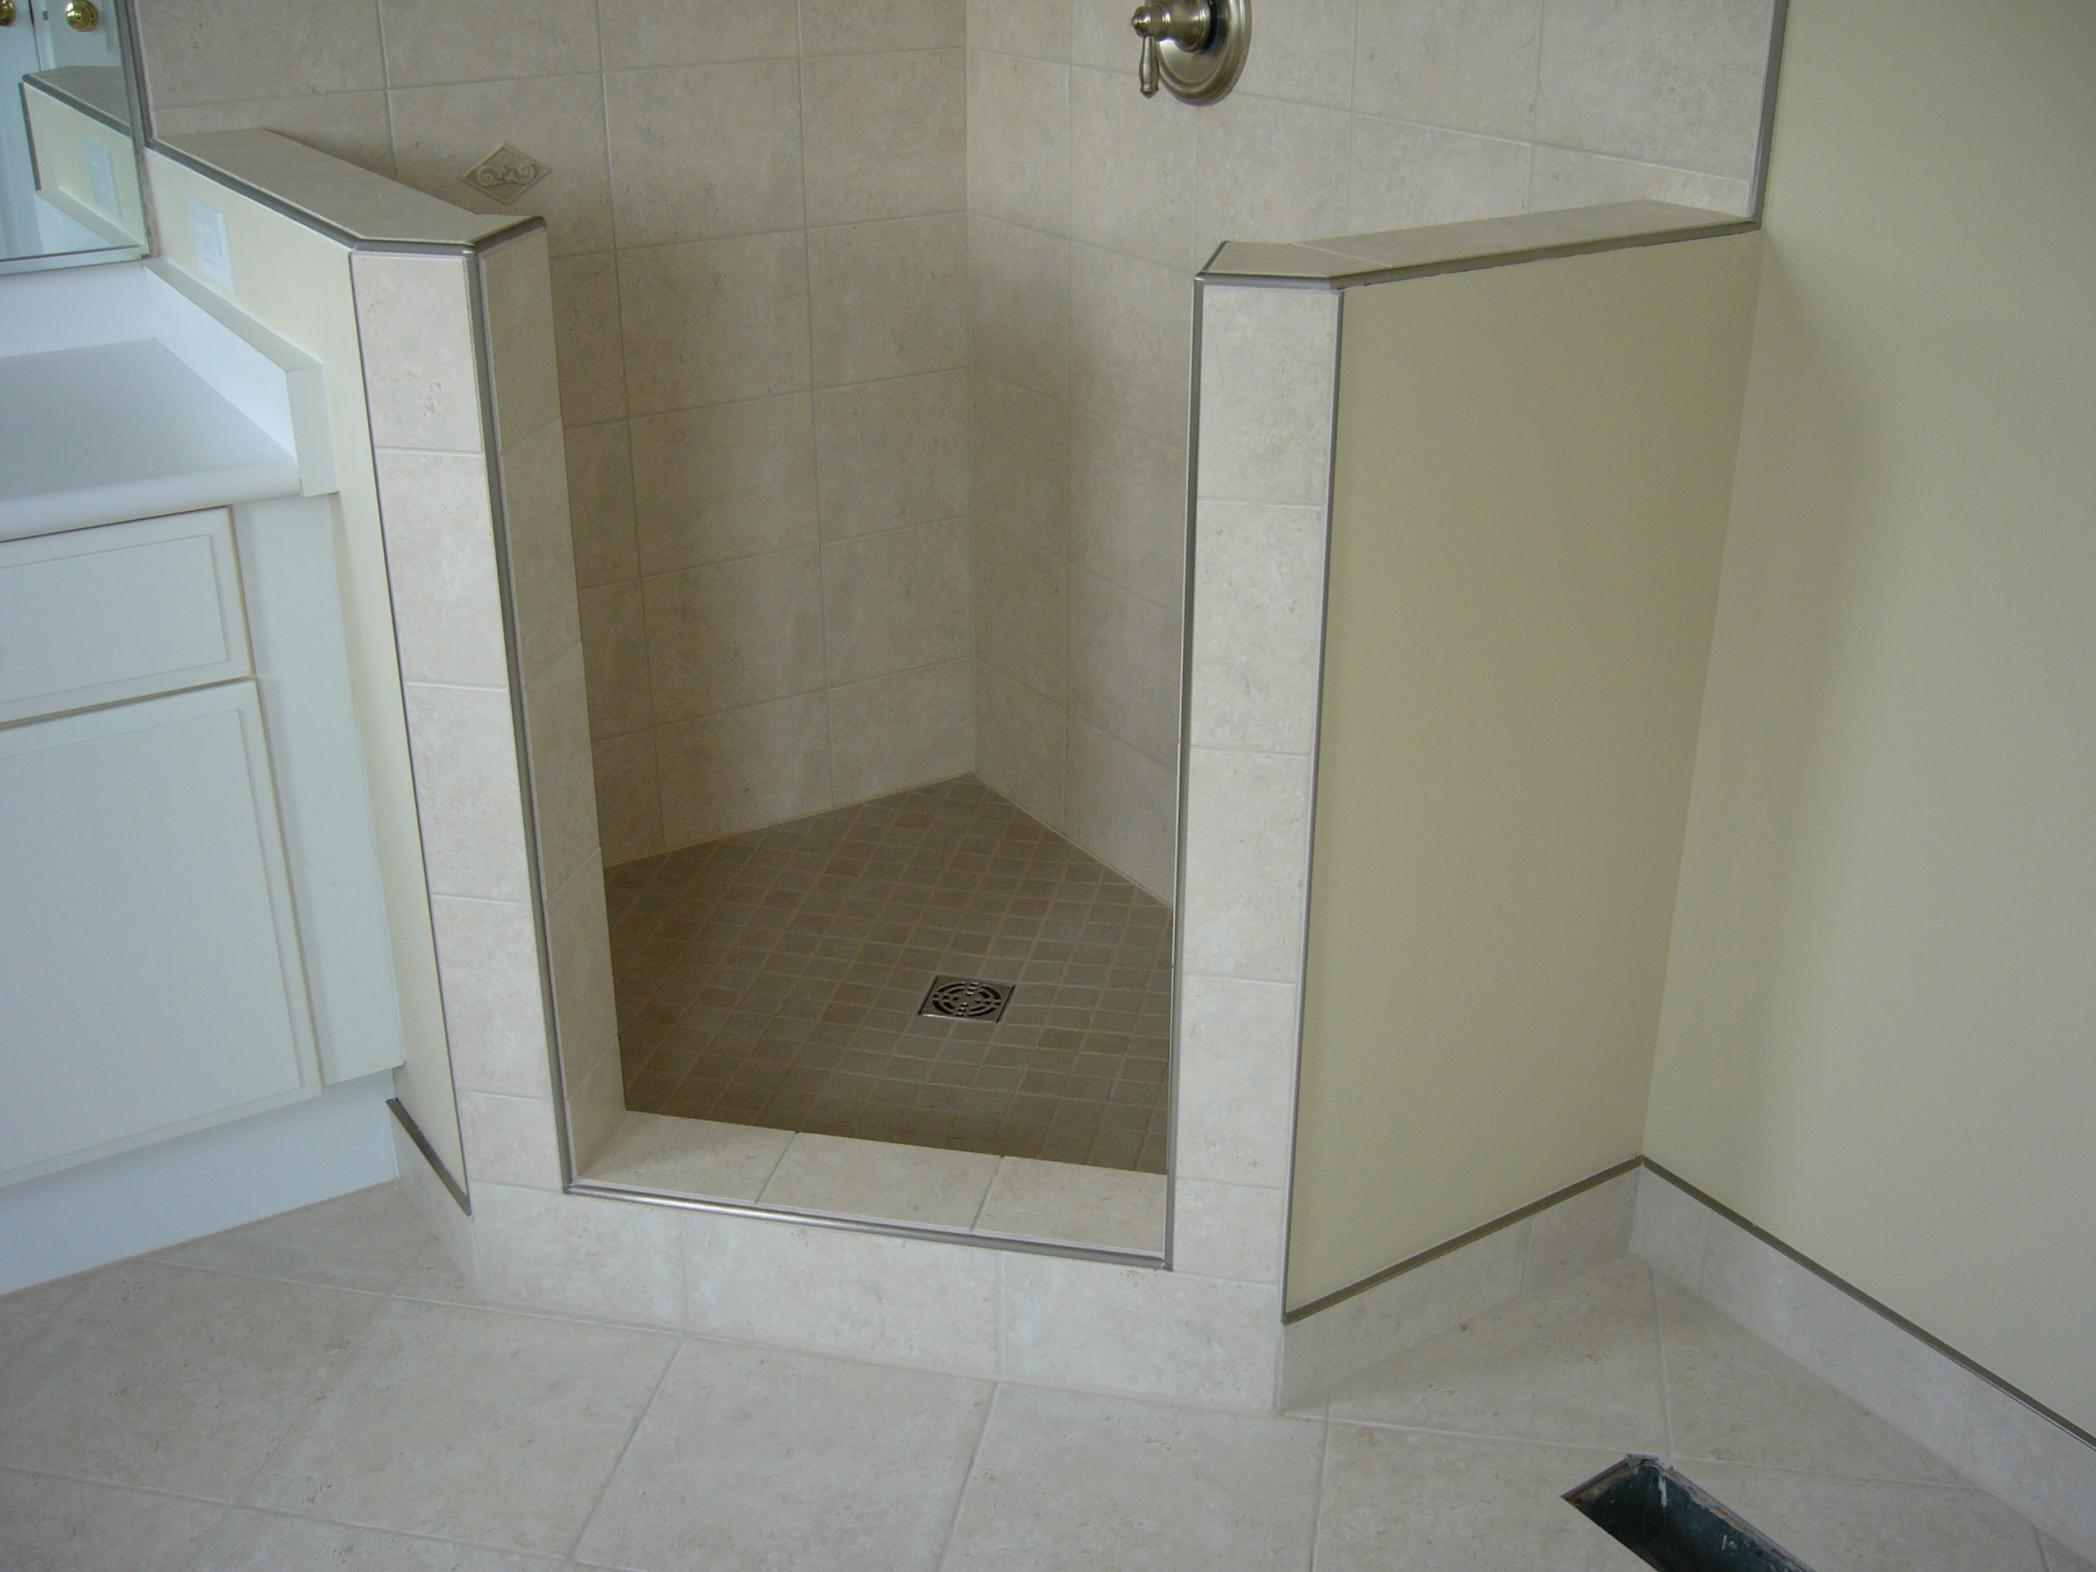 Tile Knee Wall Tiling Contractor Talk